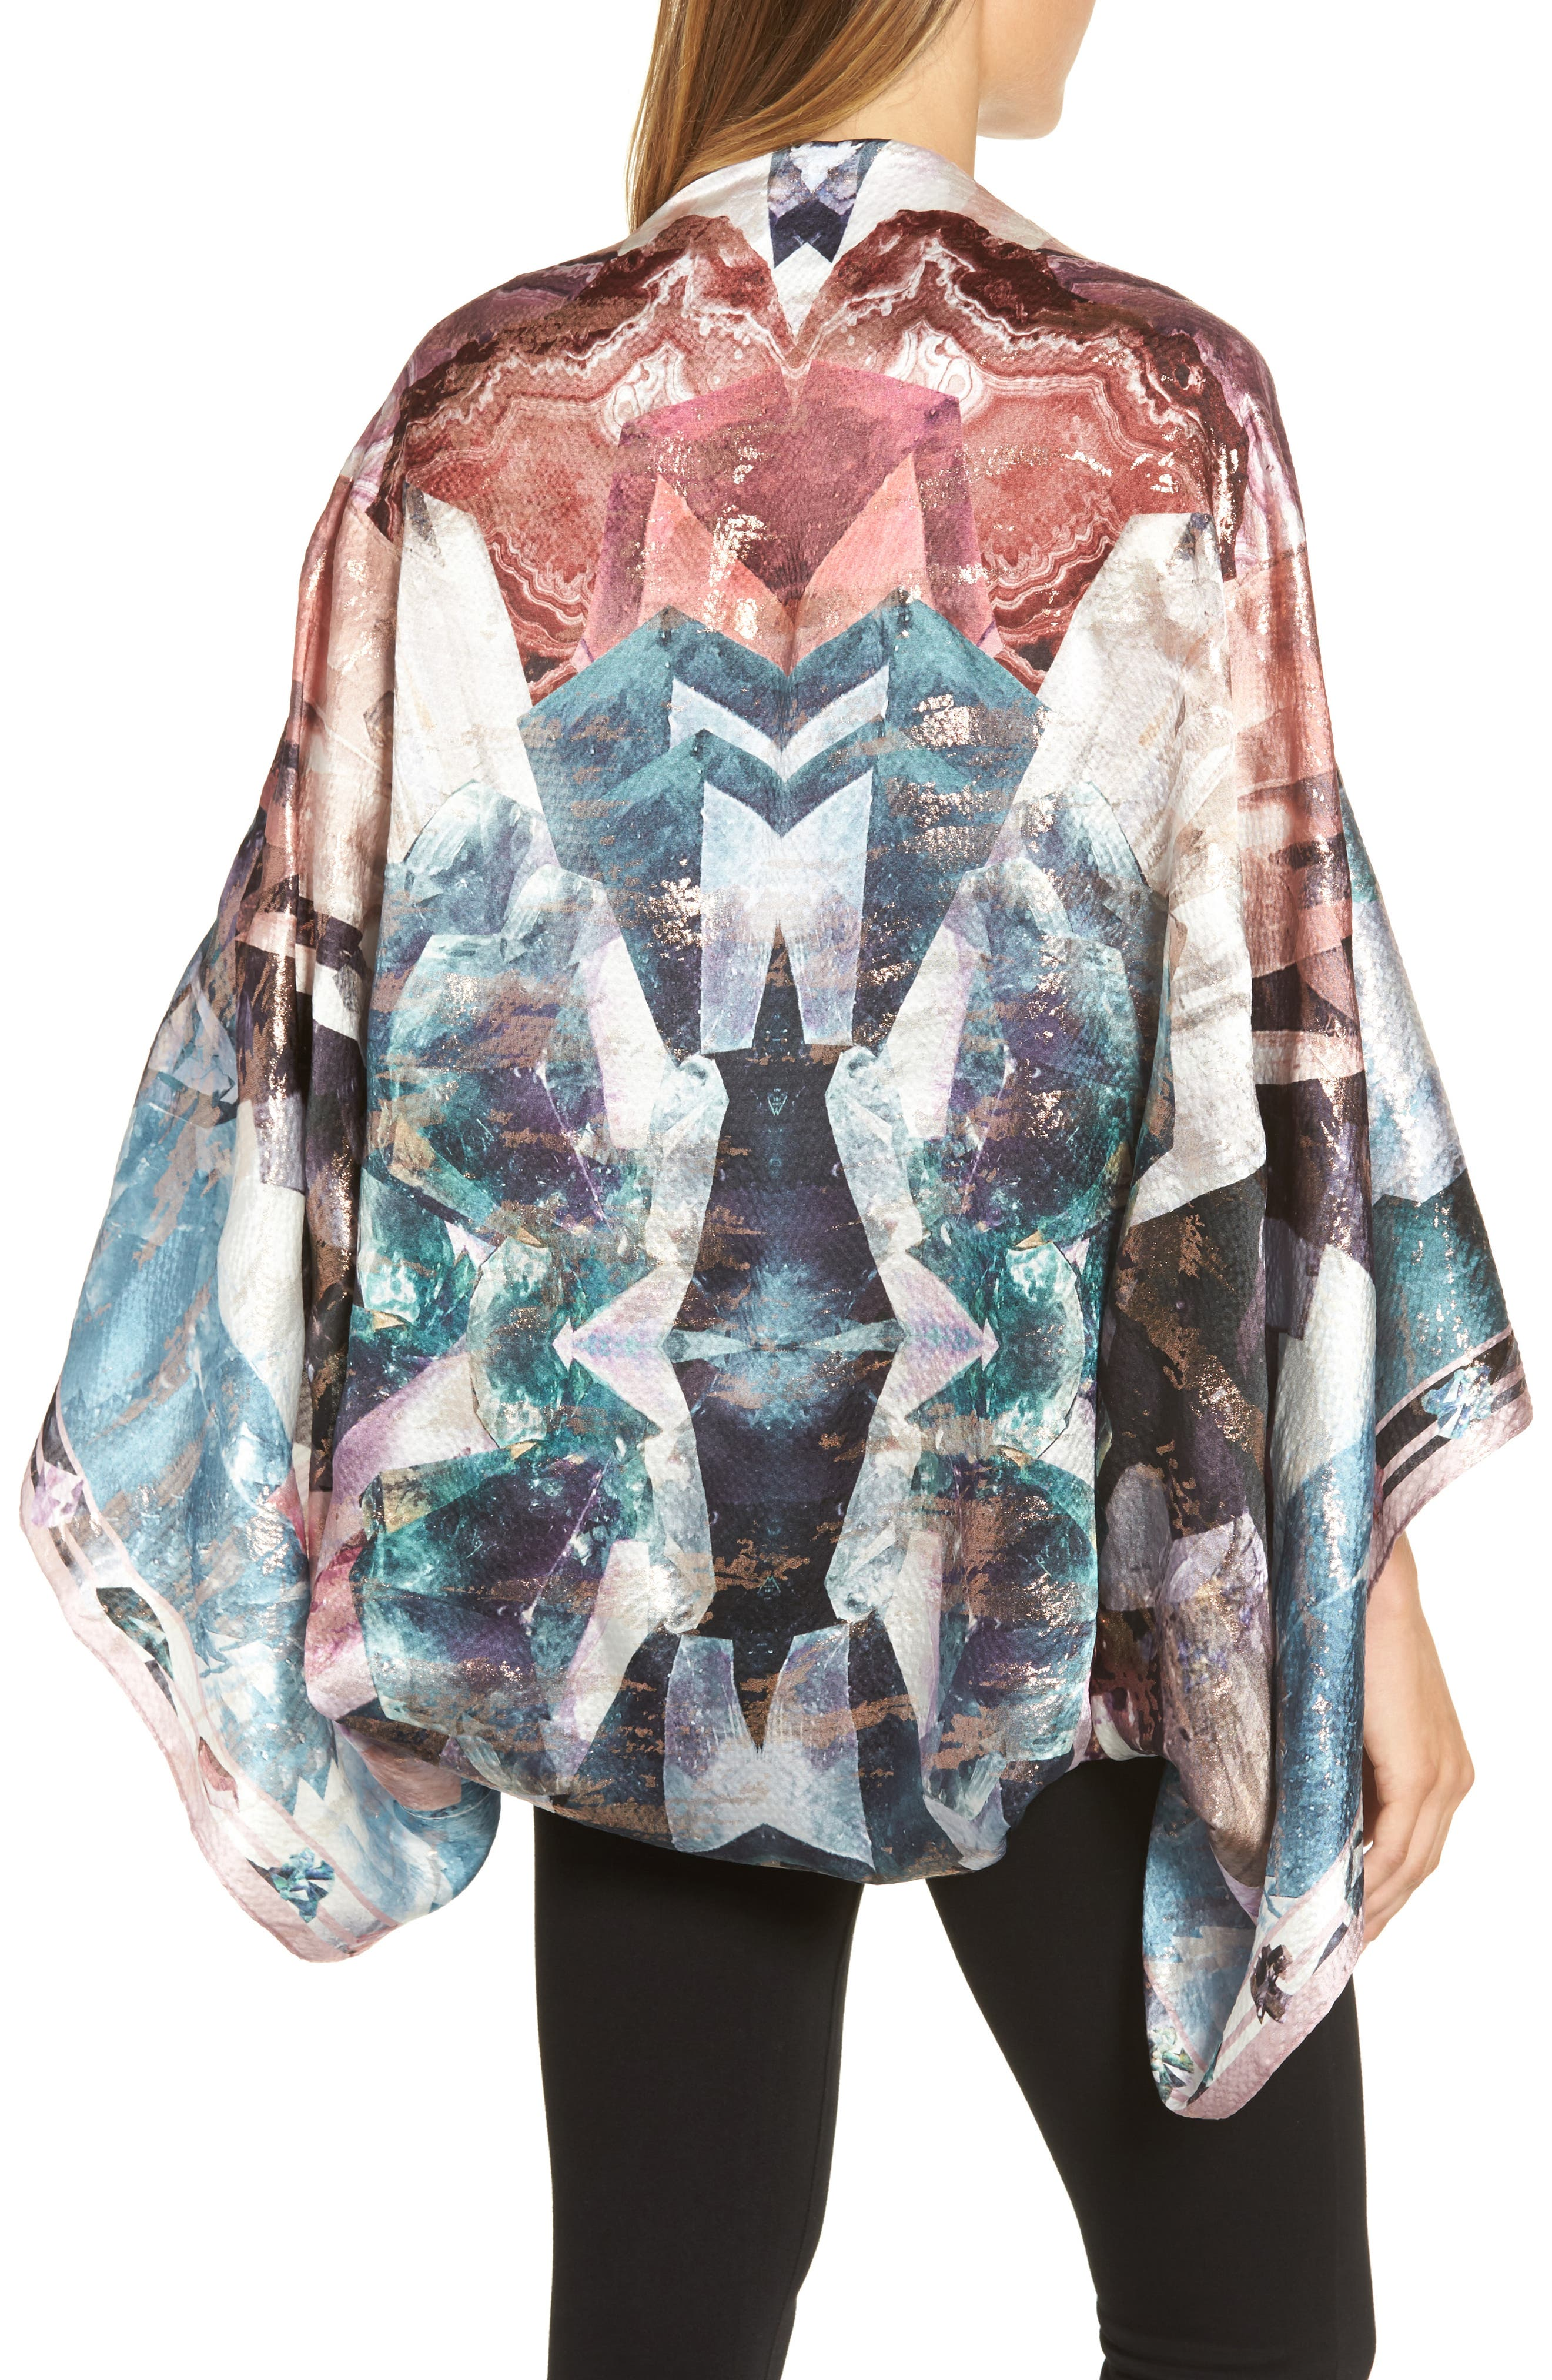 Mirrored Minerals Silk Cape Scarf,                             Alternate thumbnail 2, color,                             021